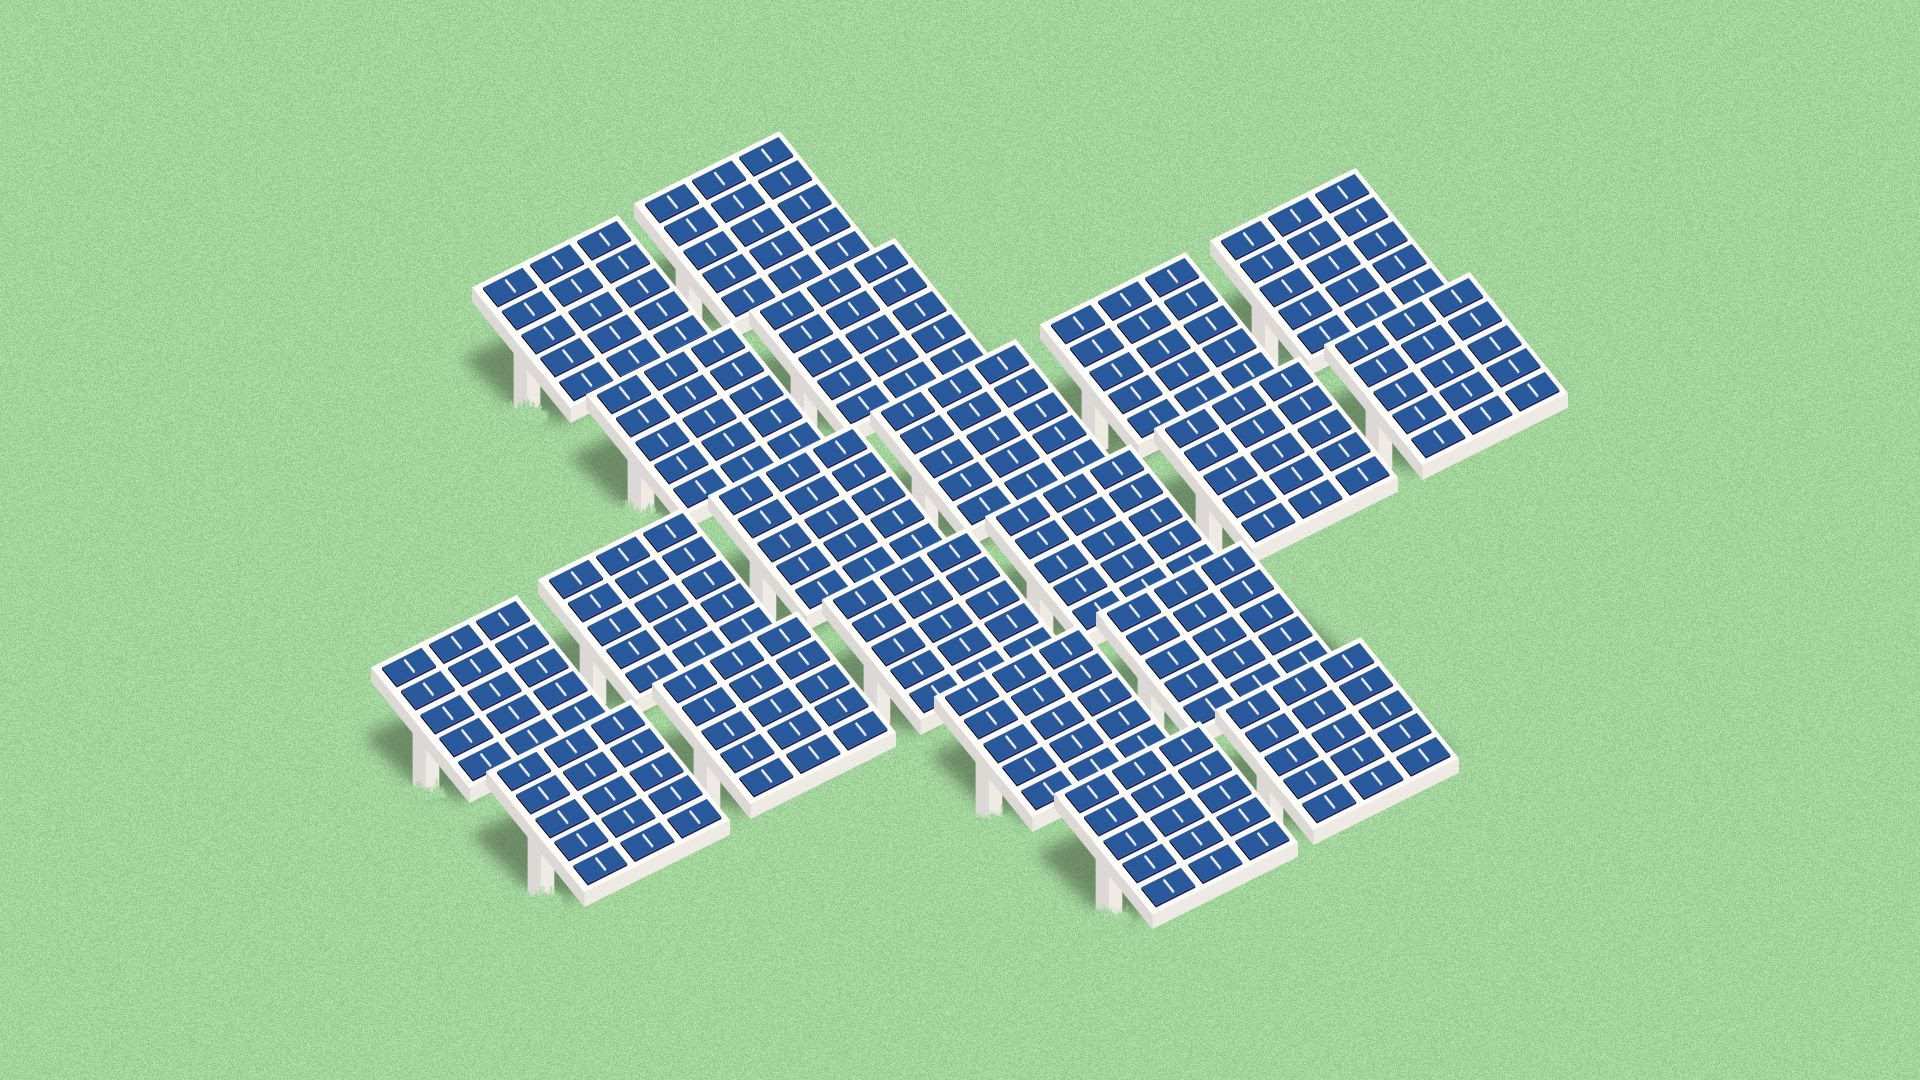 A cluster of solar panels